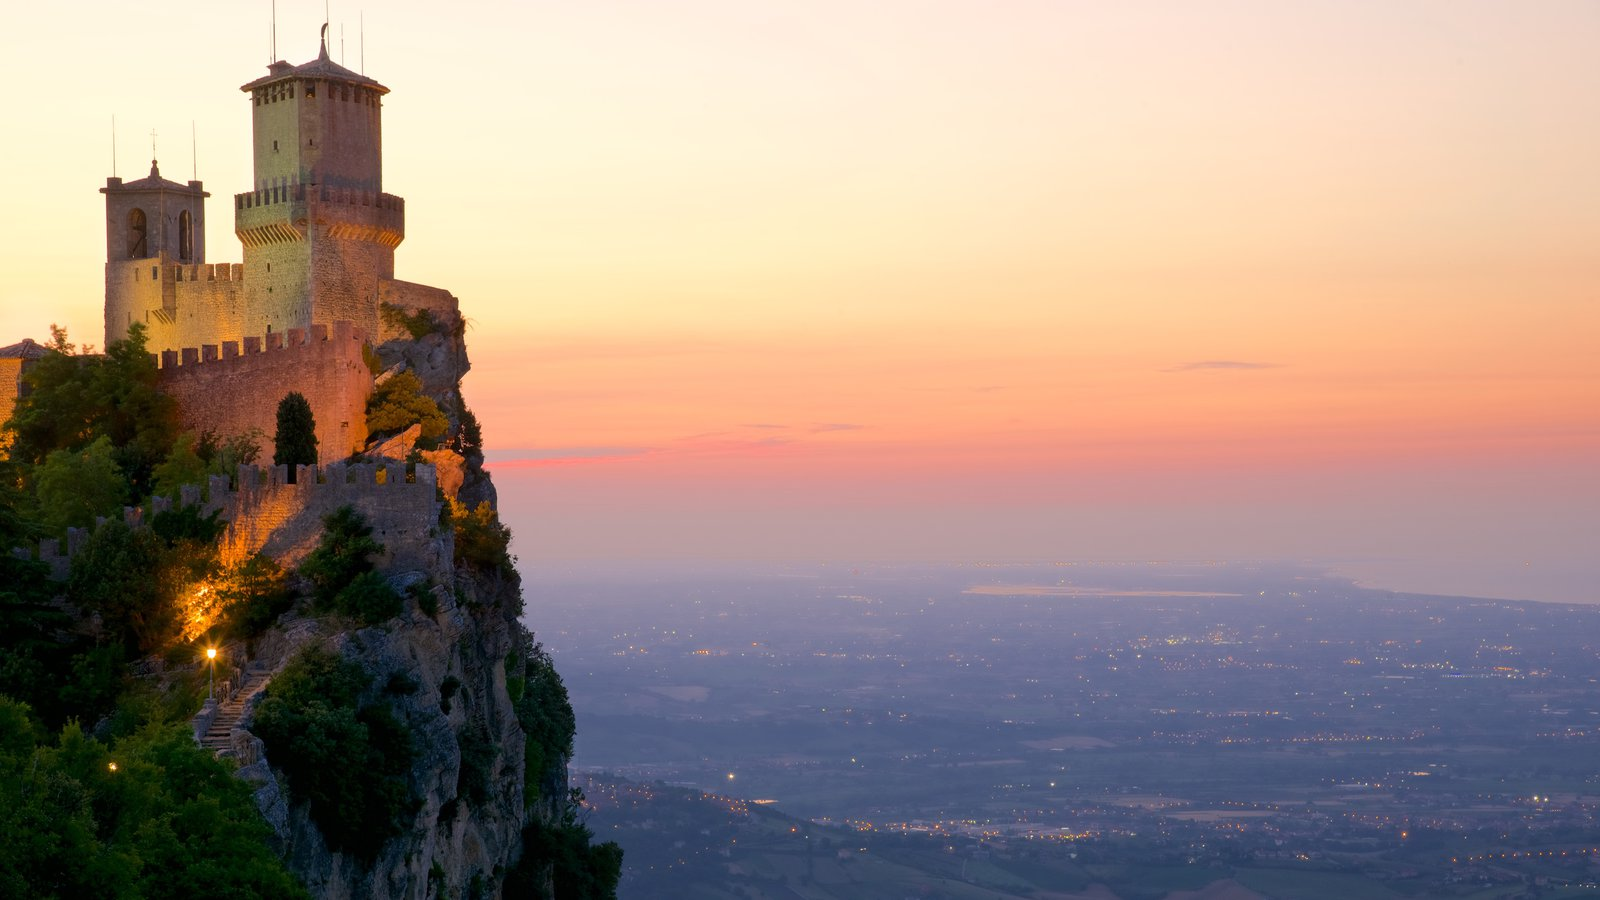 Guaita Tower featuring a castle, tranquil scenes and a sunset